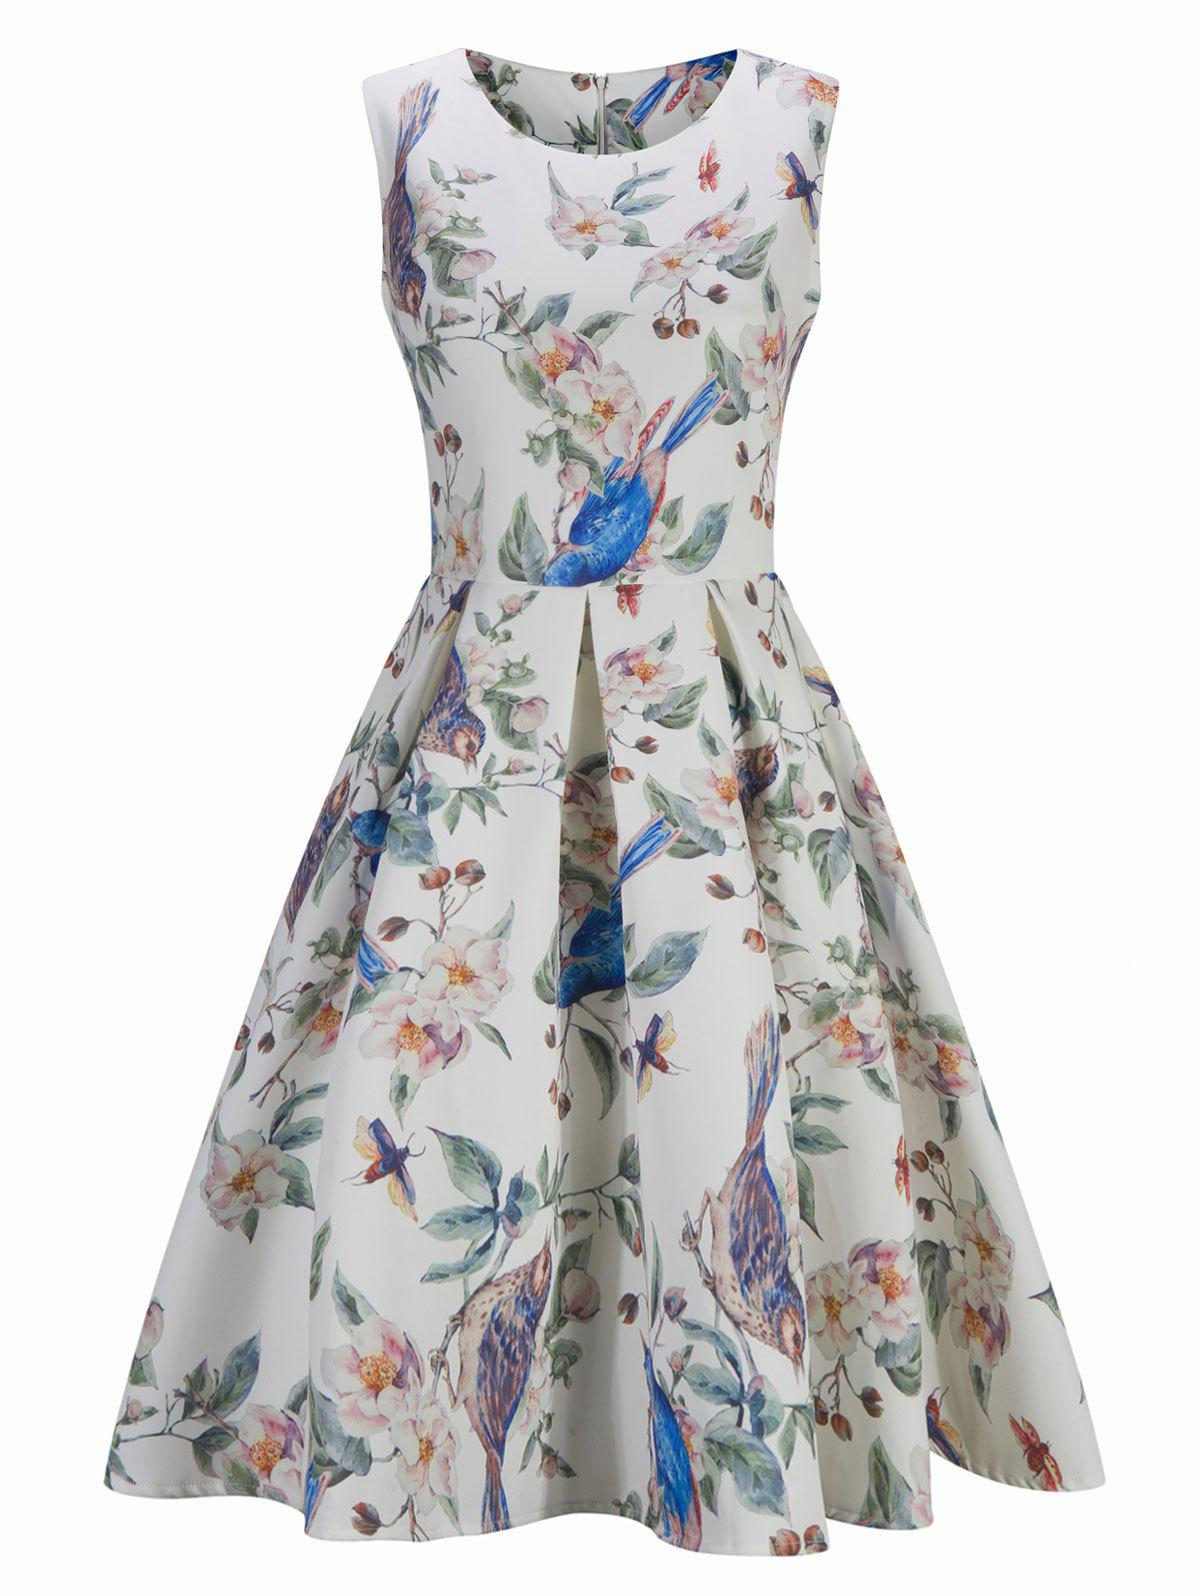 Vintage Floral Bird Print Skater Pin Up DressWOMEN<br><br>Size: M; Color: WHITE; Style: Vintage; Material: Cotton; Silhouette: A-Line; Dress Type: Fit and Flare Dress; Dresses Length: Knee-Length; Neckline: Round Collar; Sleeve Length: Sleeveless; Pattern Type: Animal,Floral; With Belt: No; Season: Fall,Spring; Weight: 0.3600kg; Package Contents: 1 x Dress;